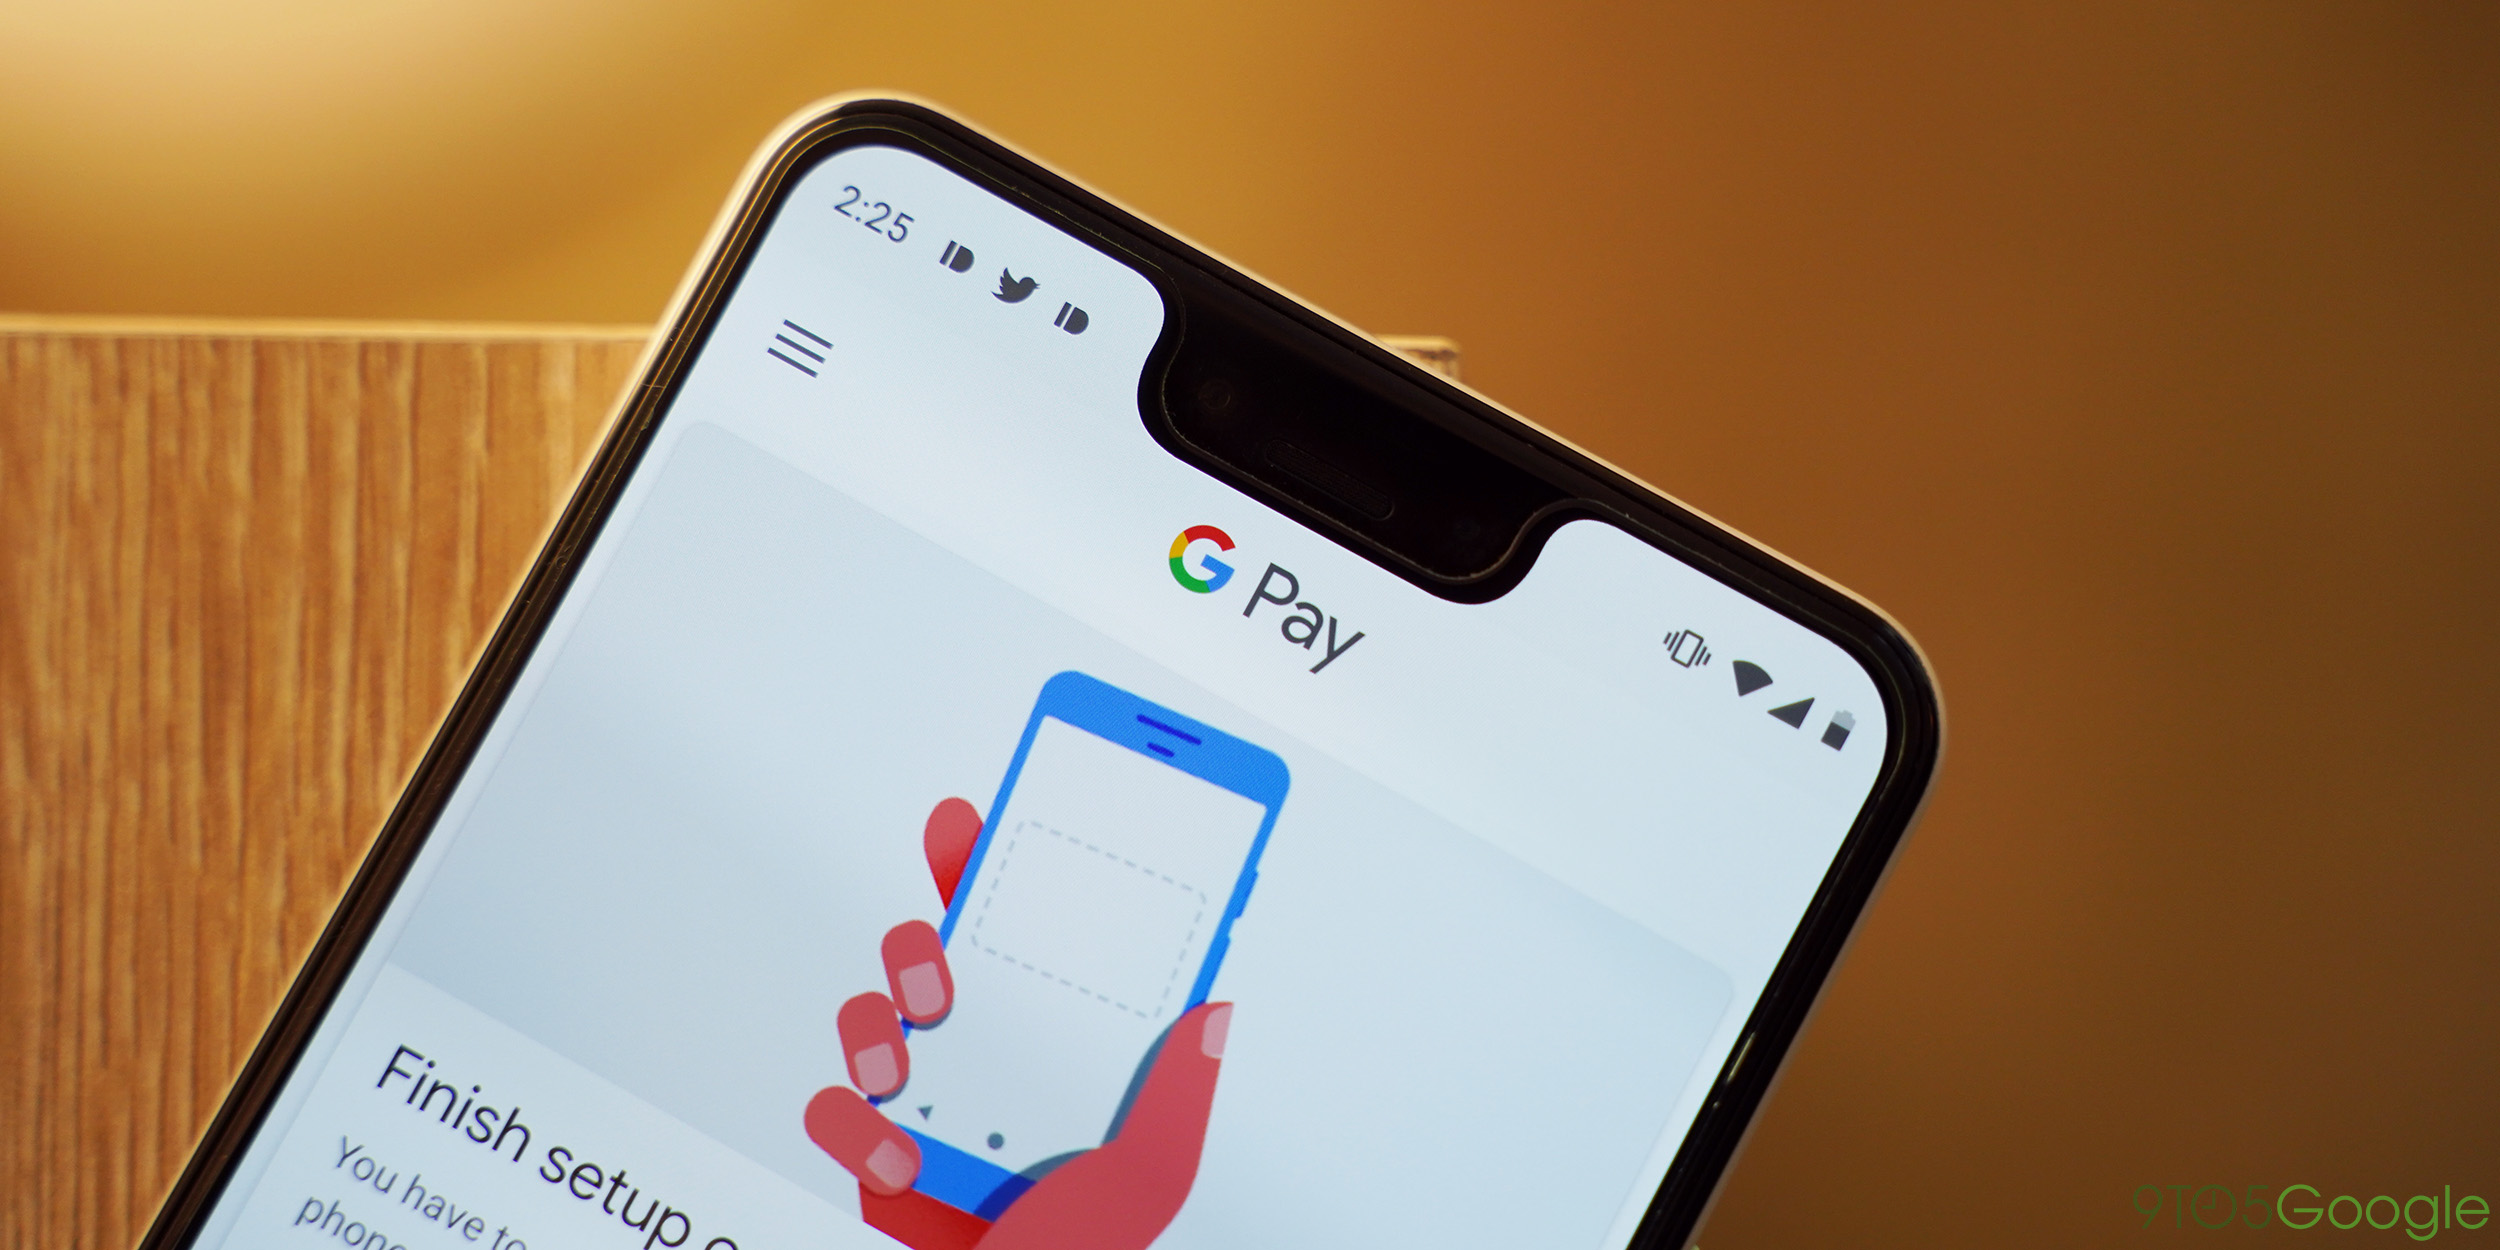 Google Pay is now available in France, w/ initial support from 6 banks